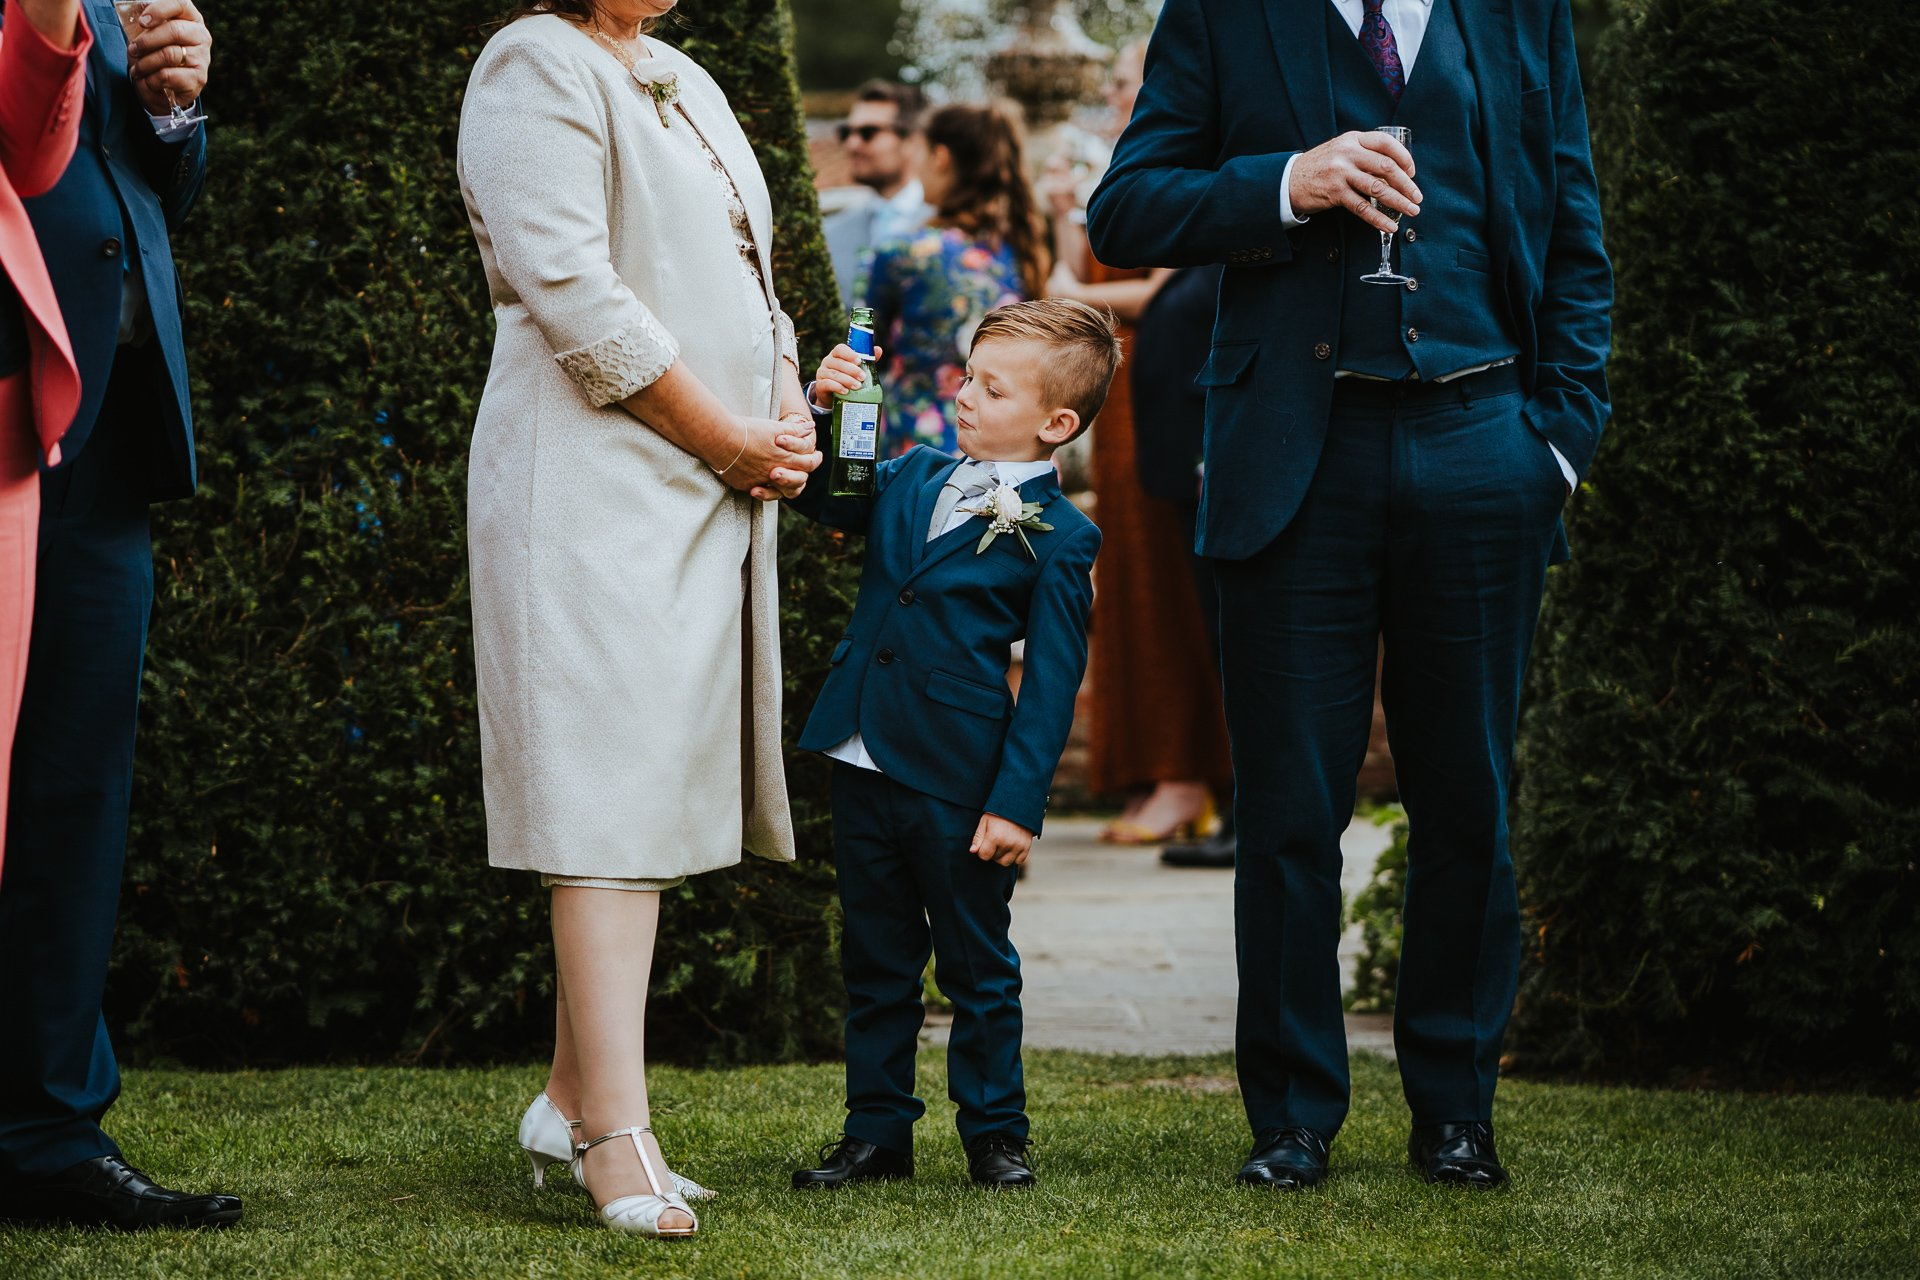 Young boy holding beer bottle and pulling face during wedding ceremony